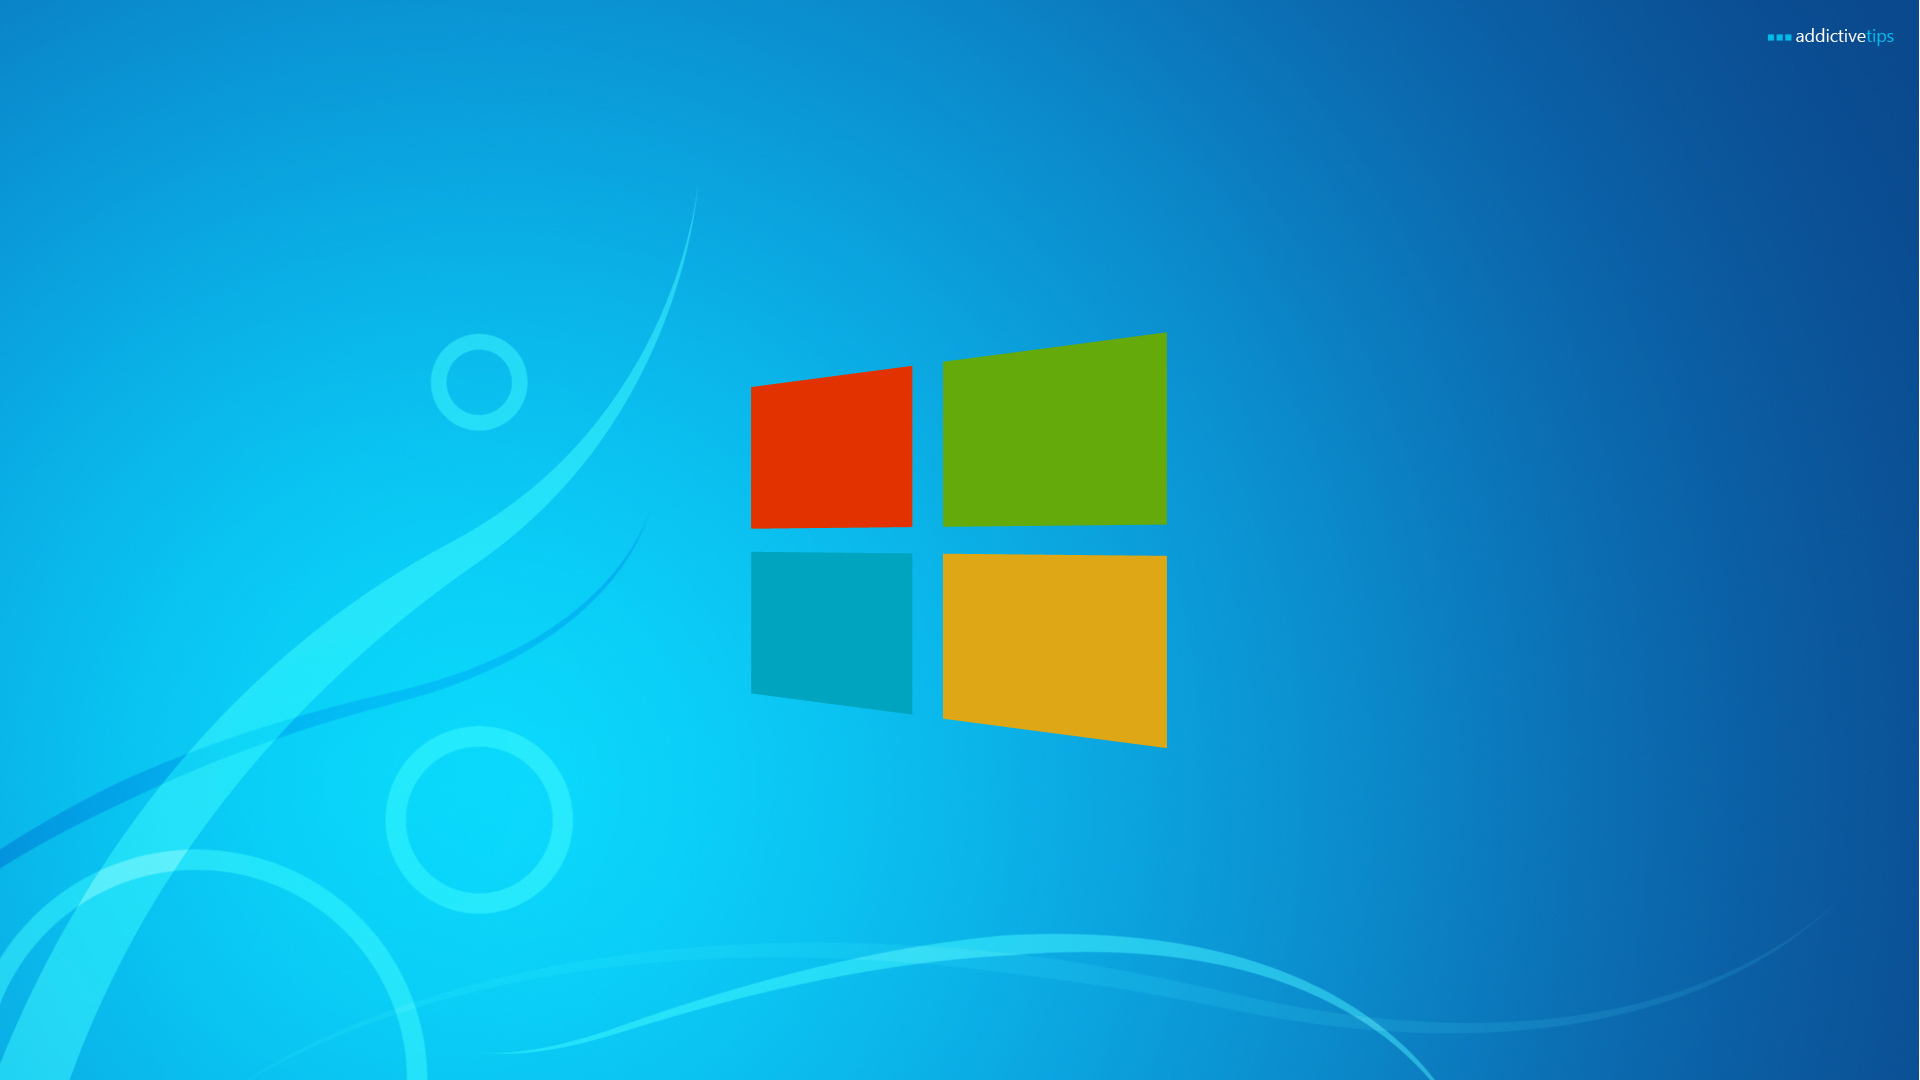 Download Our Windows 8 Metro Wallpapers 1920x1080